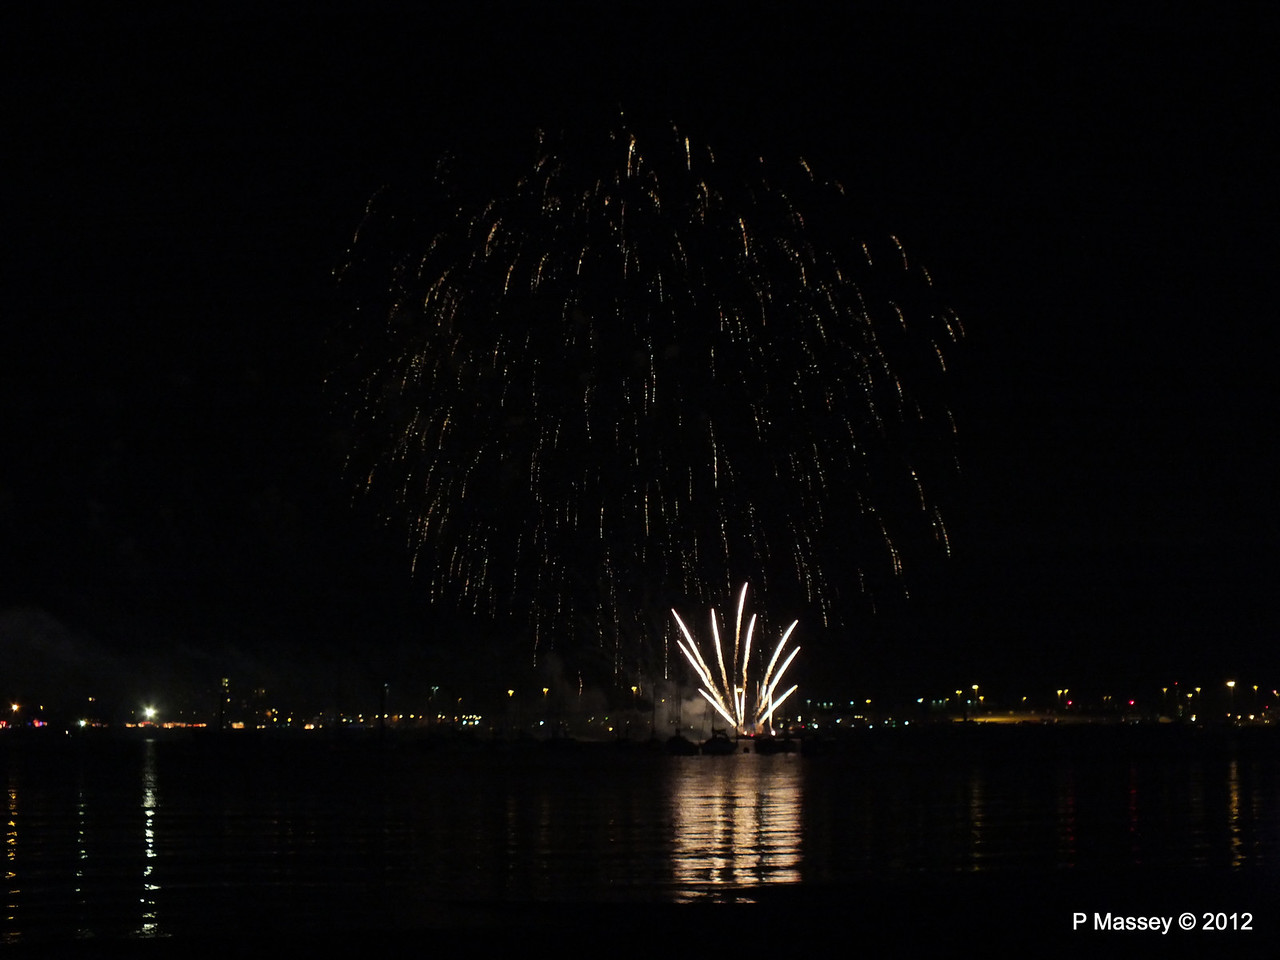 Fireworks off Mayflower Park PDM 03-11-2012 20-55-19